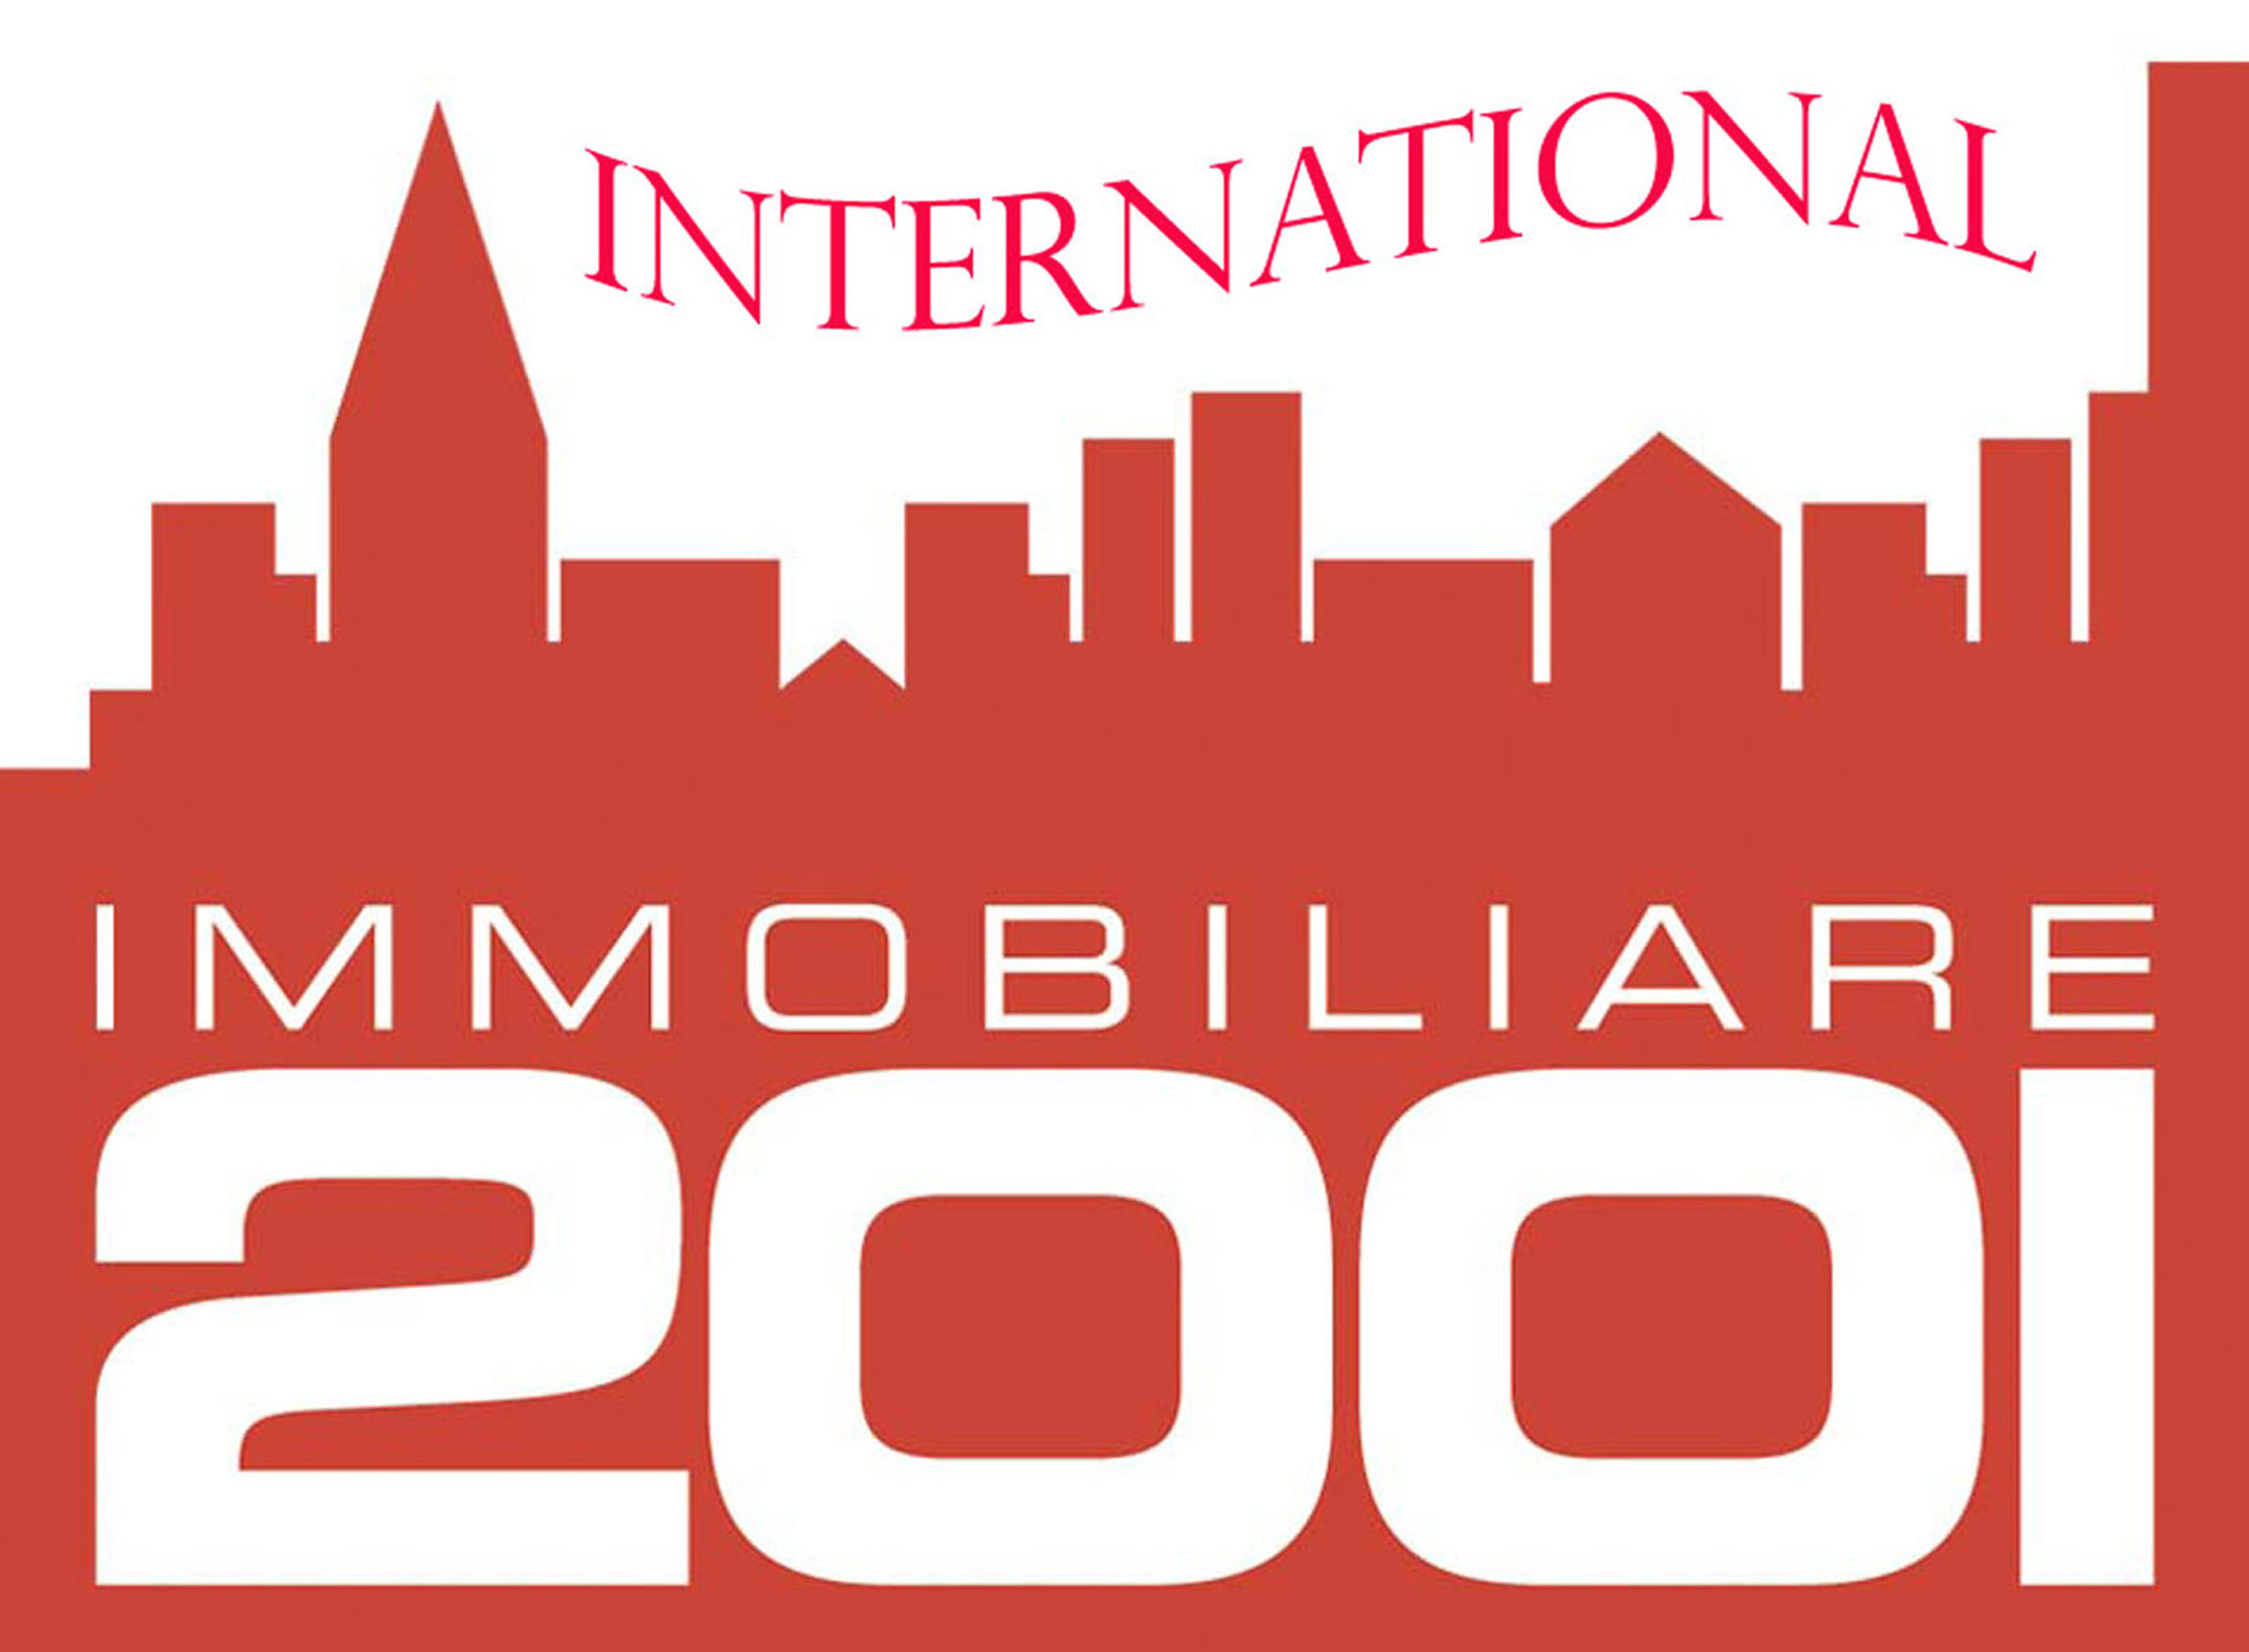 Immobiliare 2001 International